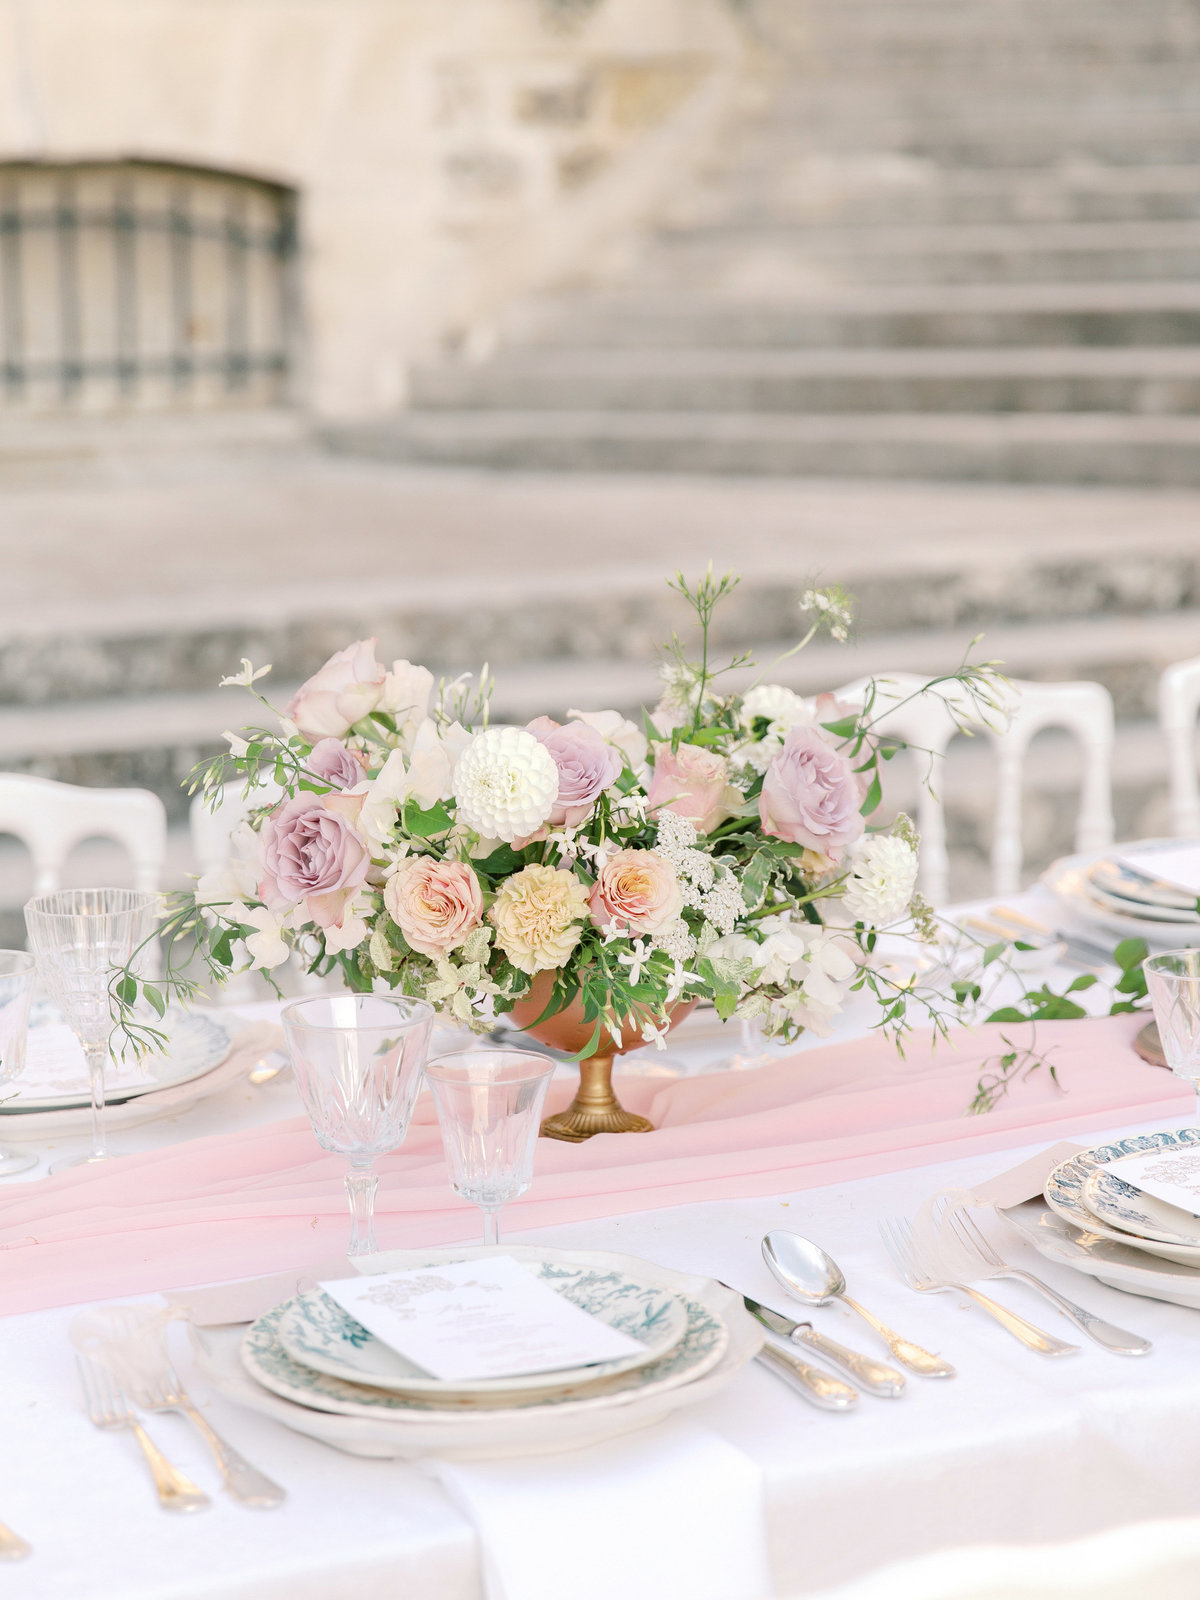 Luxurious french chateau wedding amelia soegijono0028